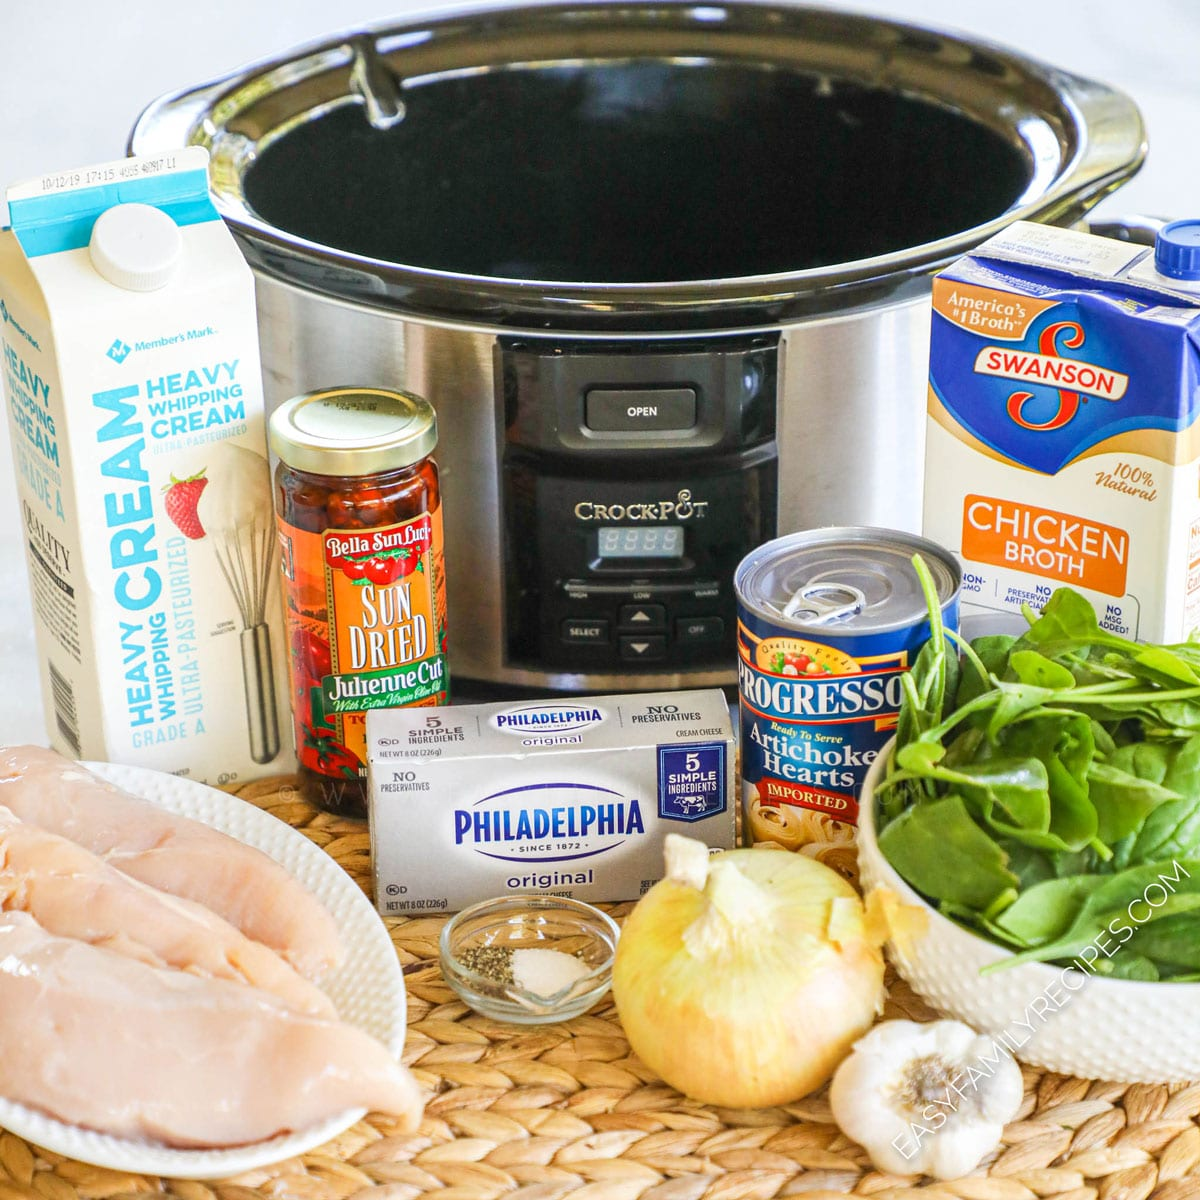 Ingredients for Tuscan Chicken Soup including chicken breast, spinach, artichokes, sun dried tomatoes, garlic, onion